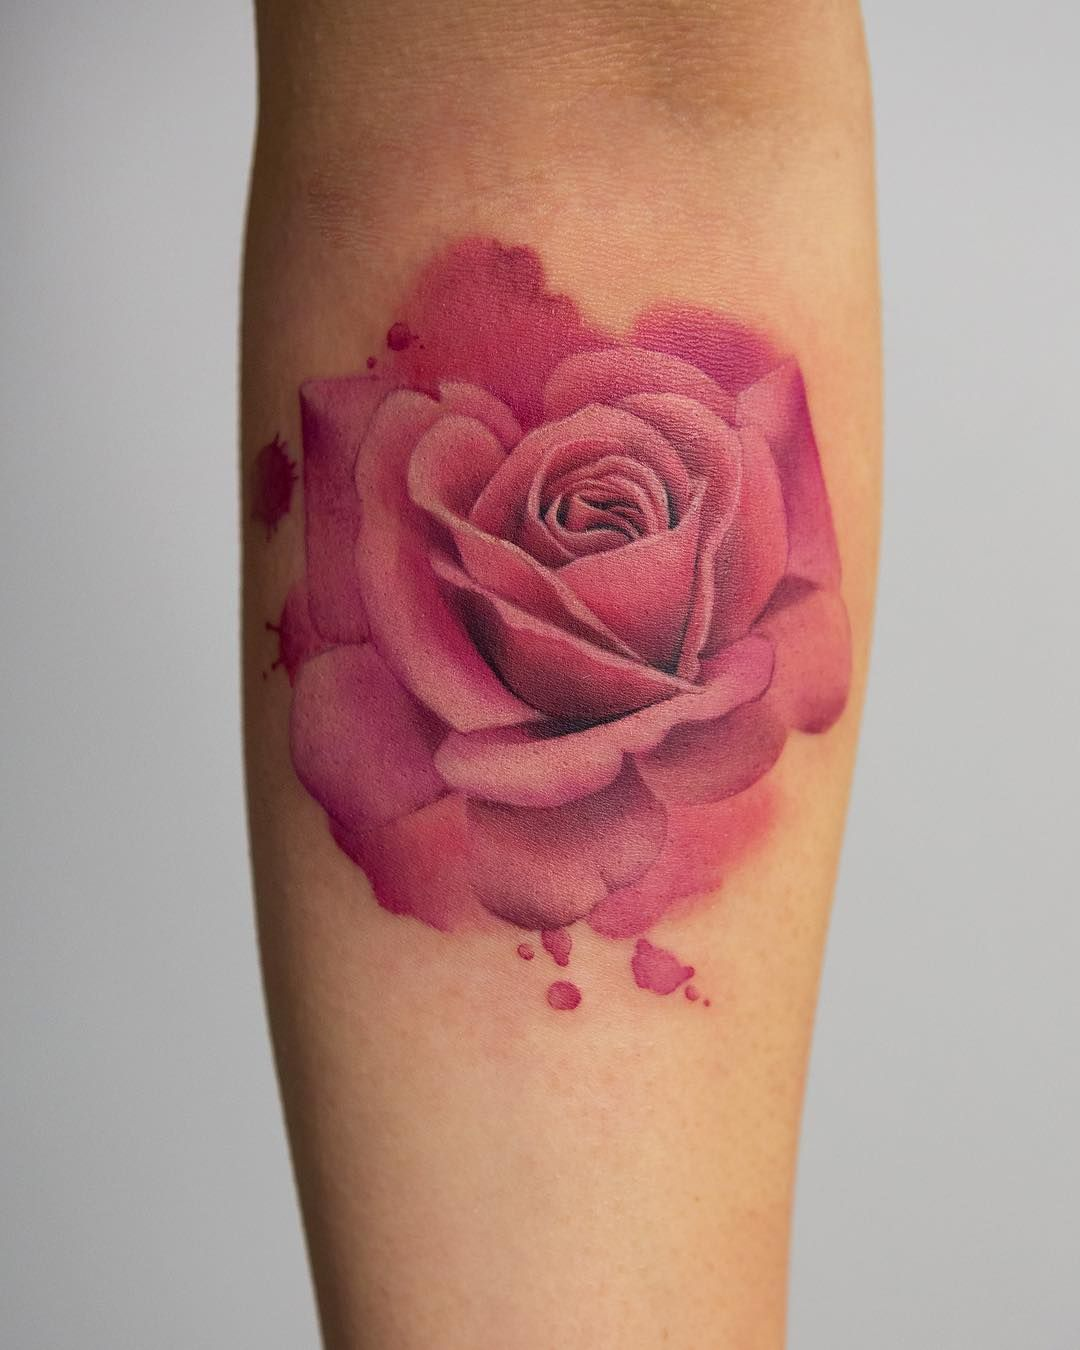 Feed your ink addiction with 50 of the most beautiful rose tattoo feed your ink addiction with 50 of the most beautiful rose tattoo designs for men and women izmirmasajfo